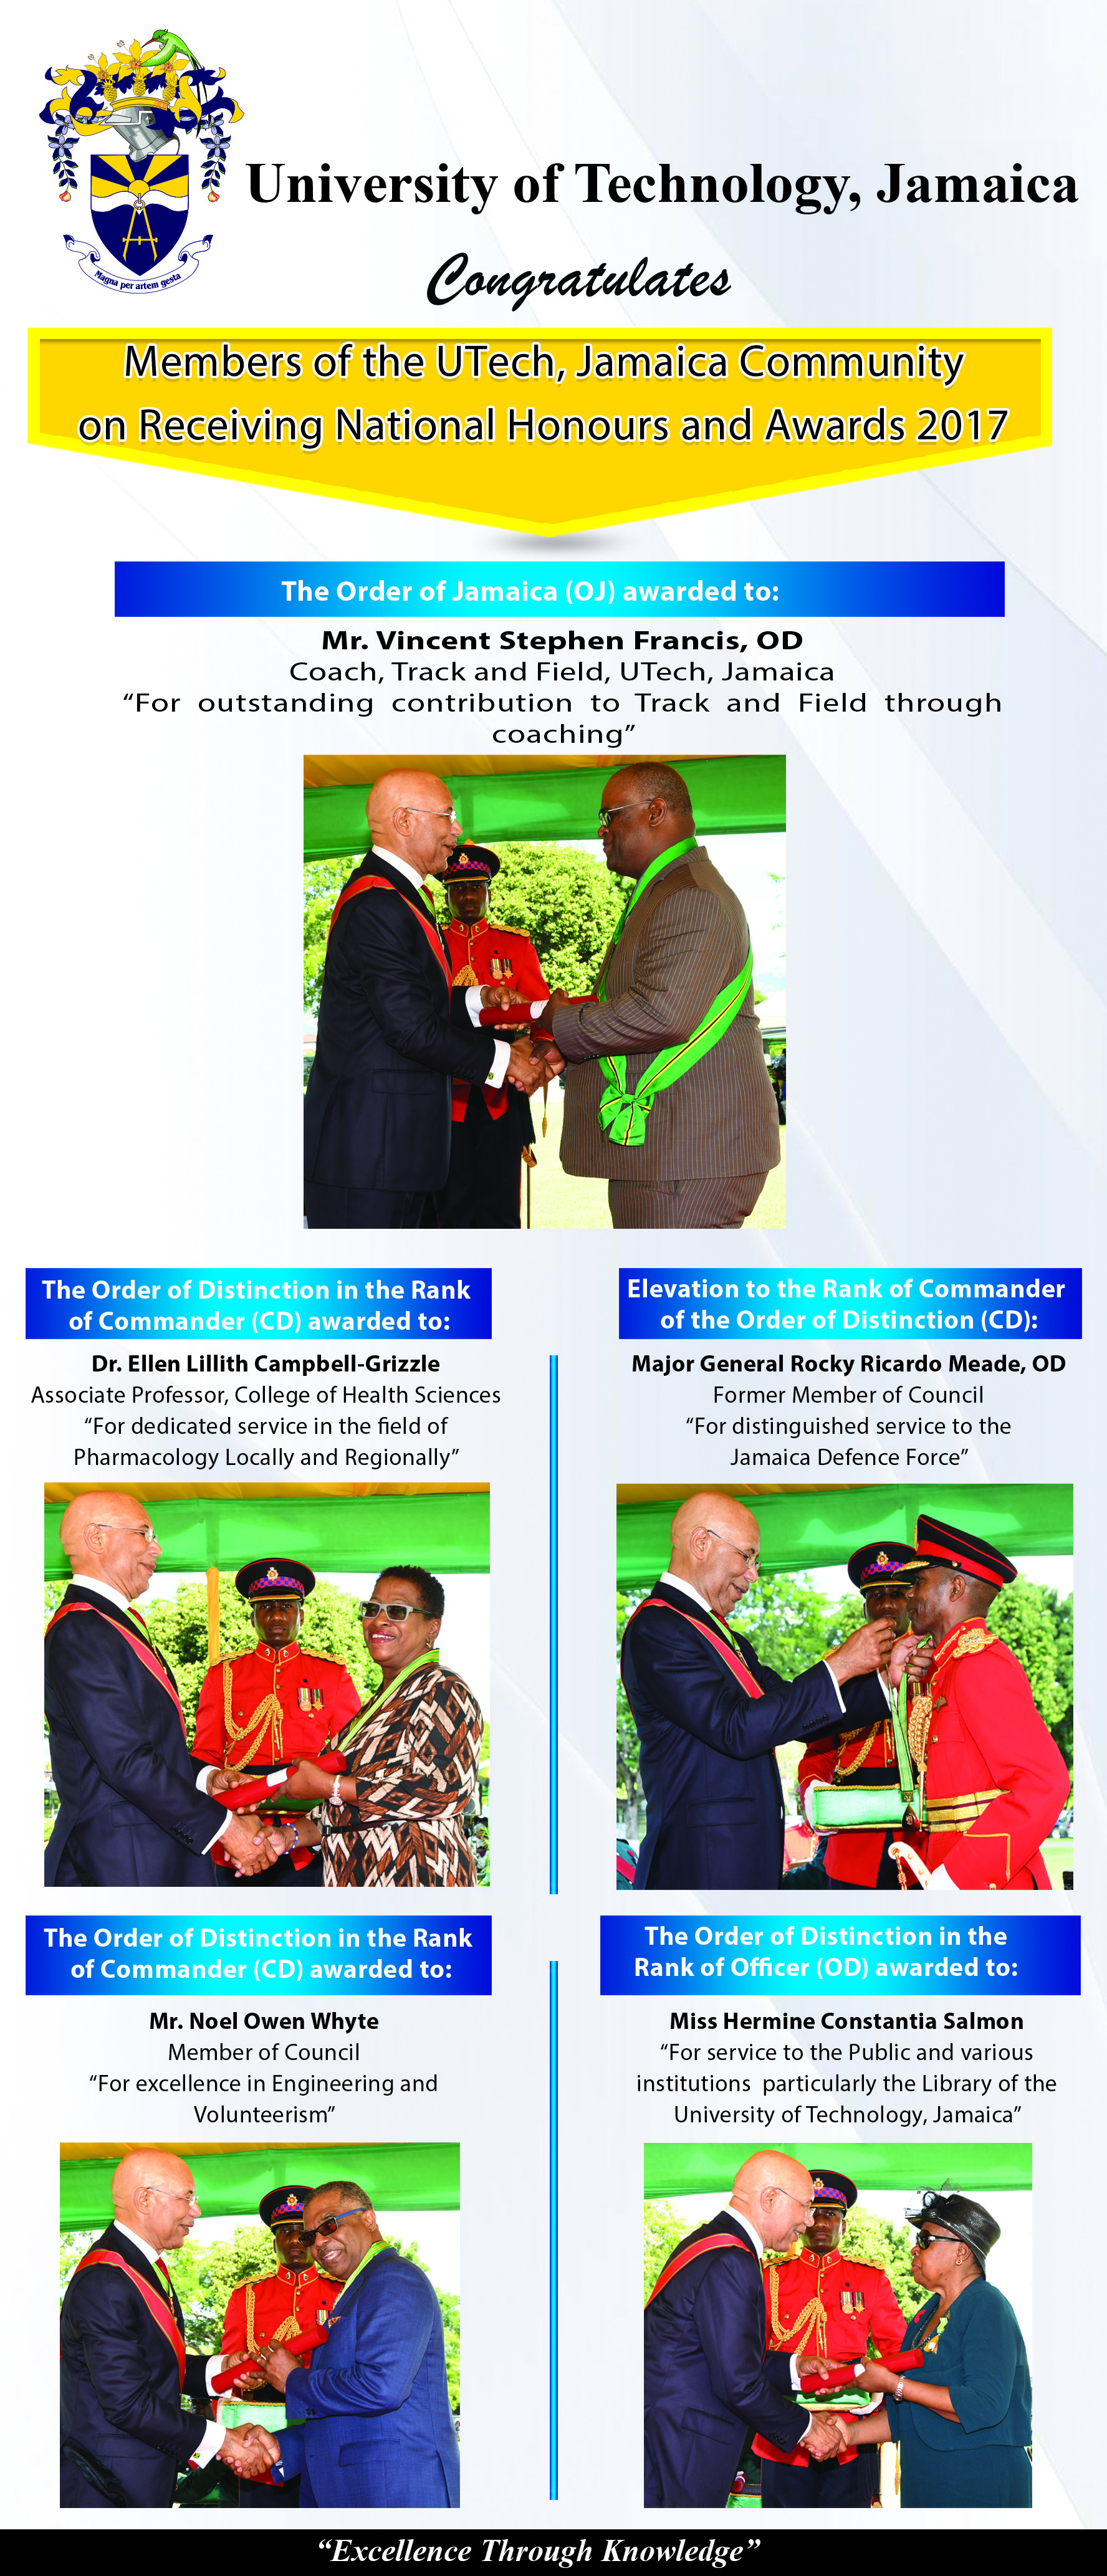 Members of the UTech, Ja. Community Receive National Honours and Awards